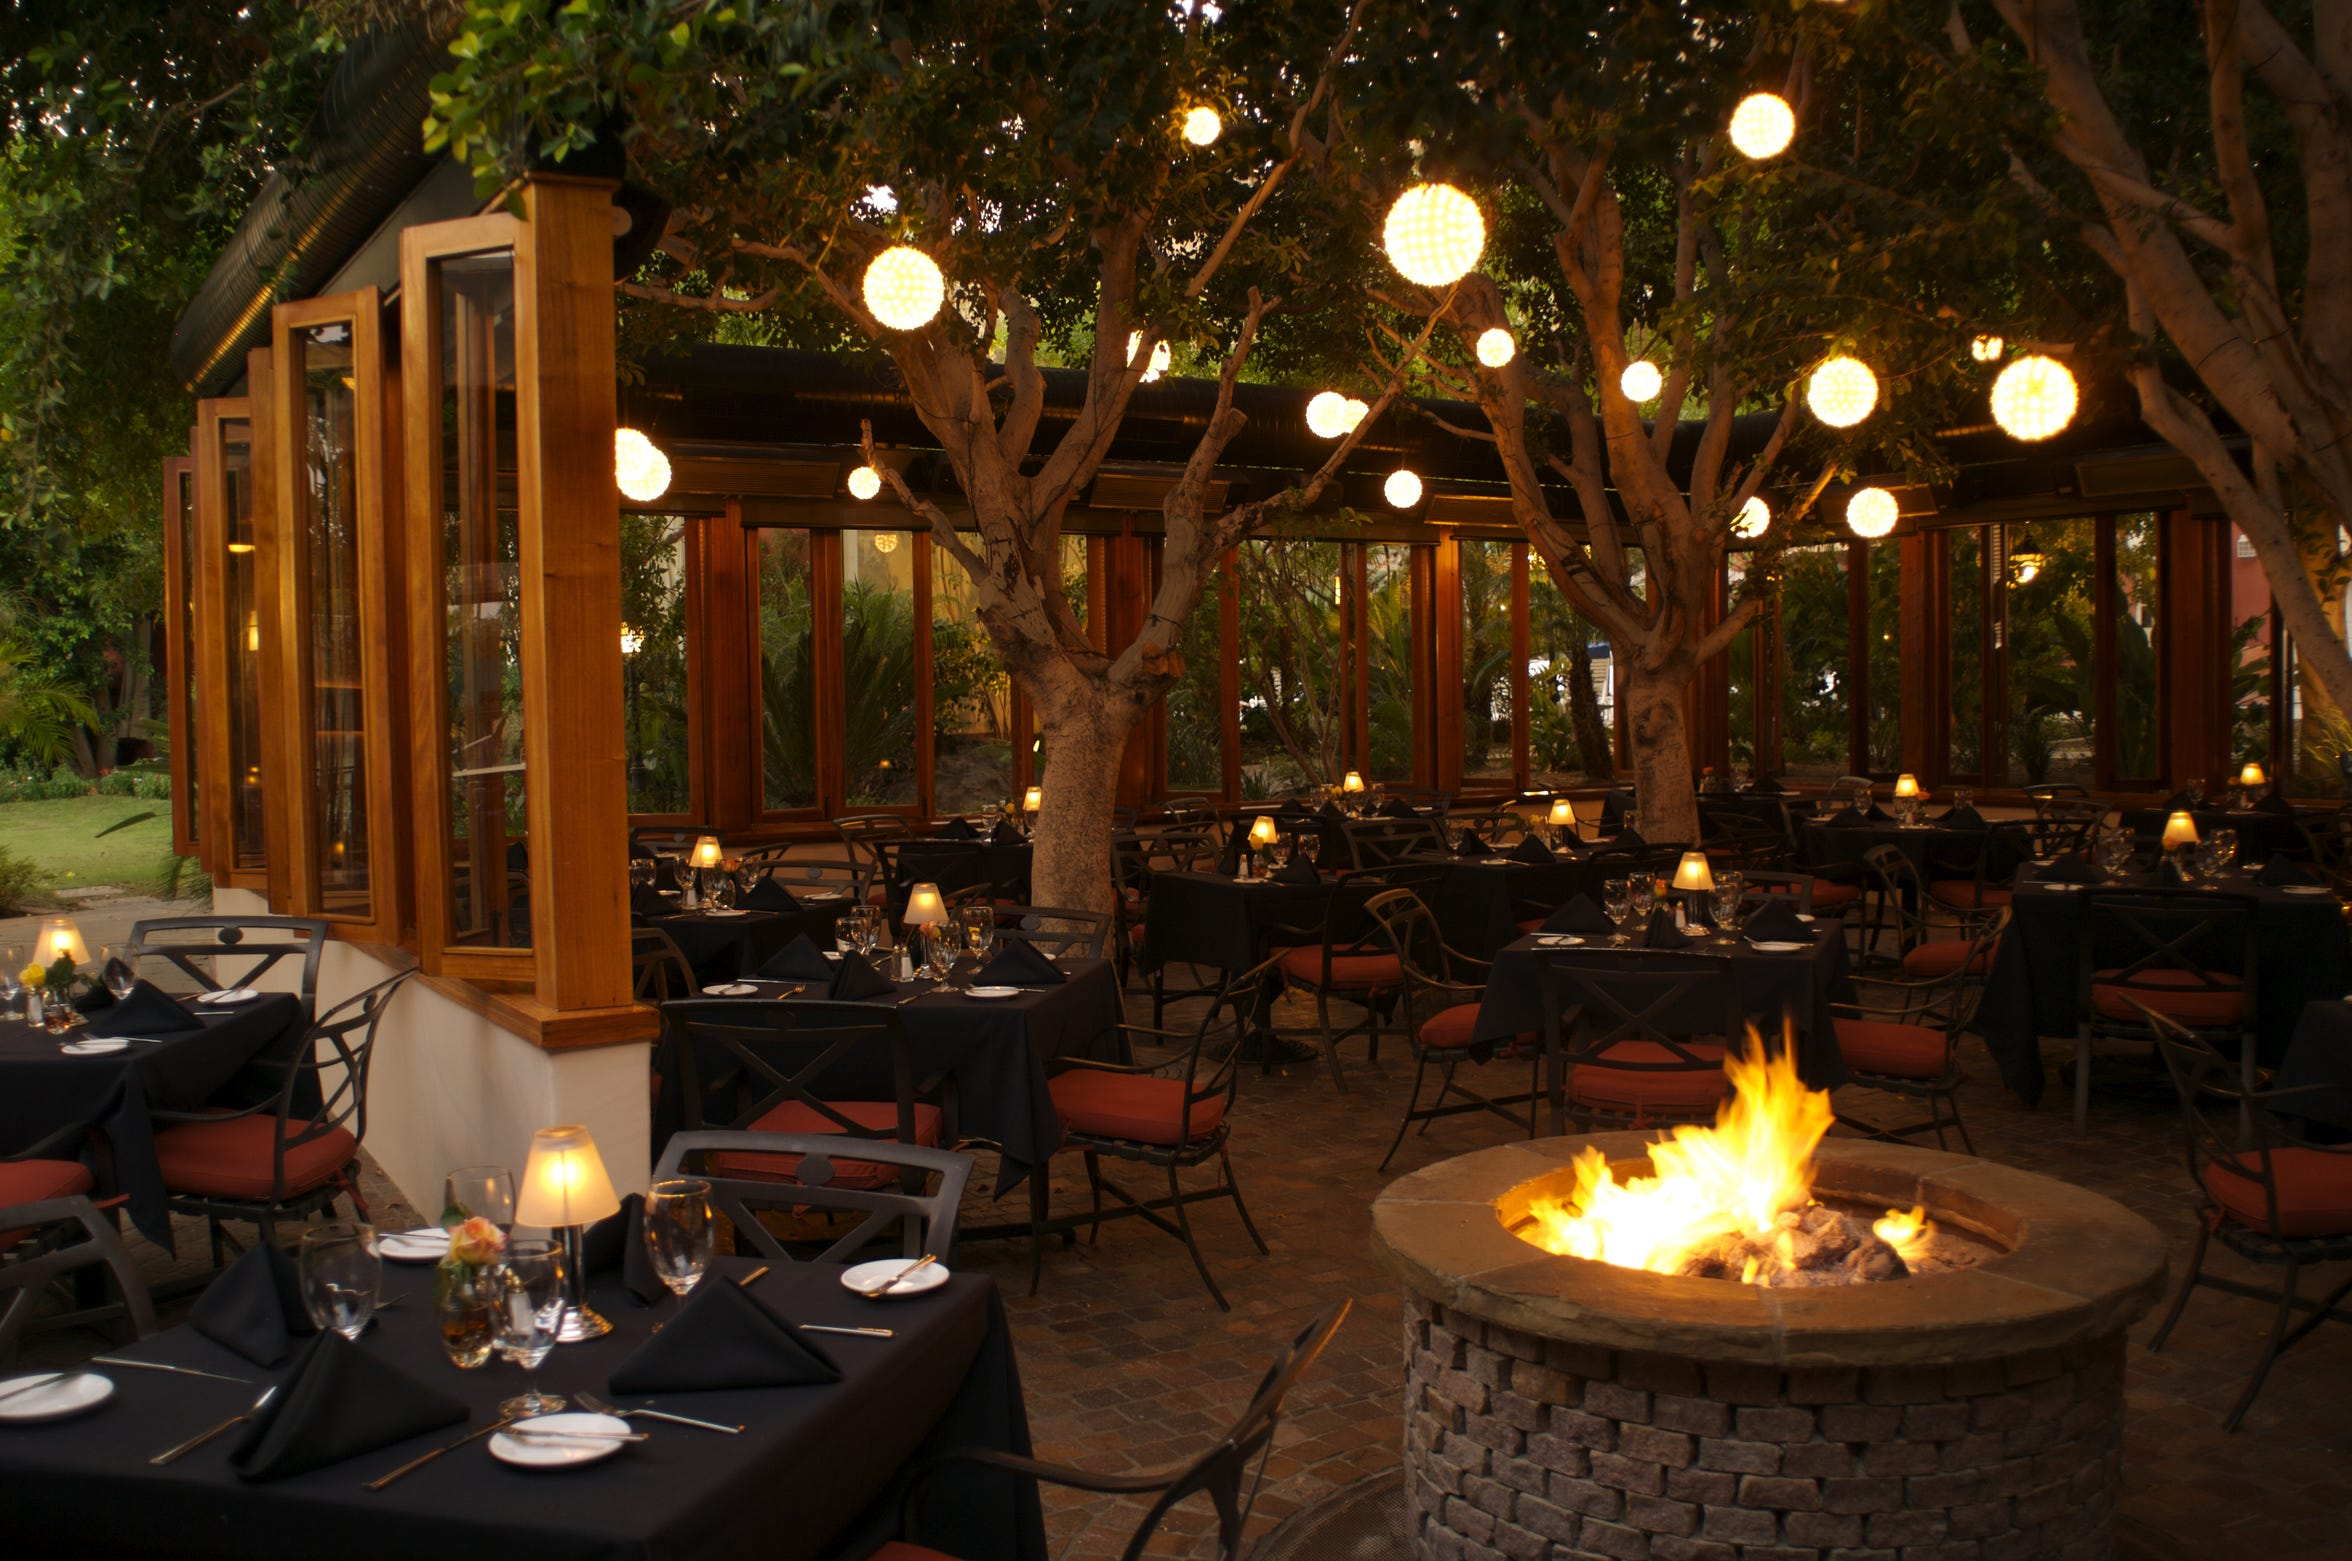 The patio dining area at Spencer's Restaurant in downtown Palm Springs, owned and operated by Harold Matzner.